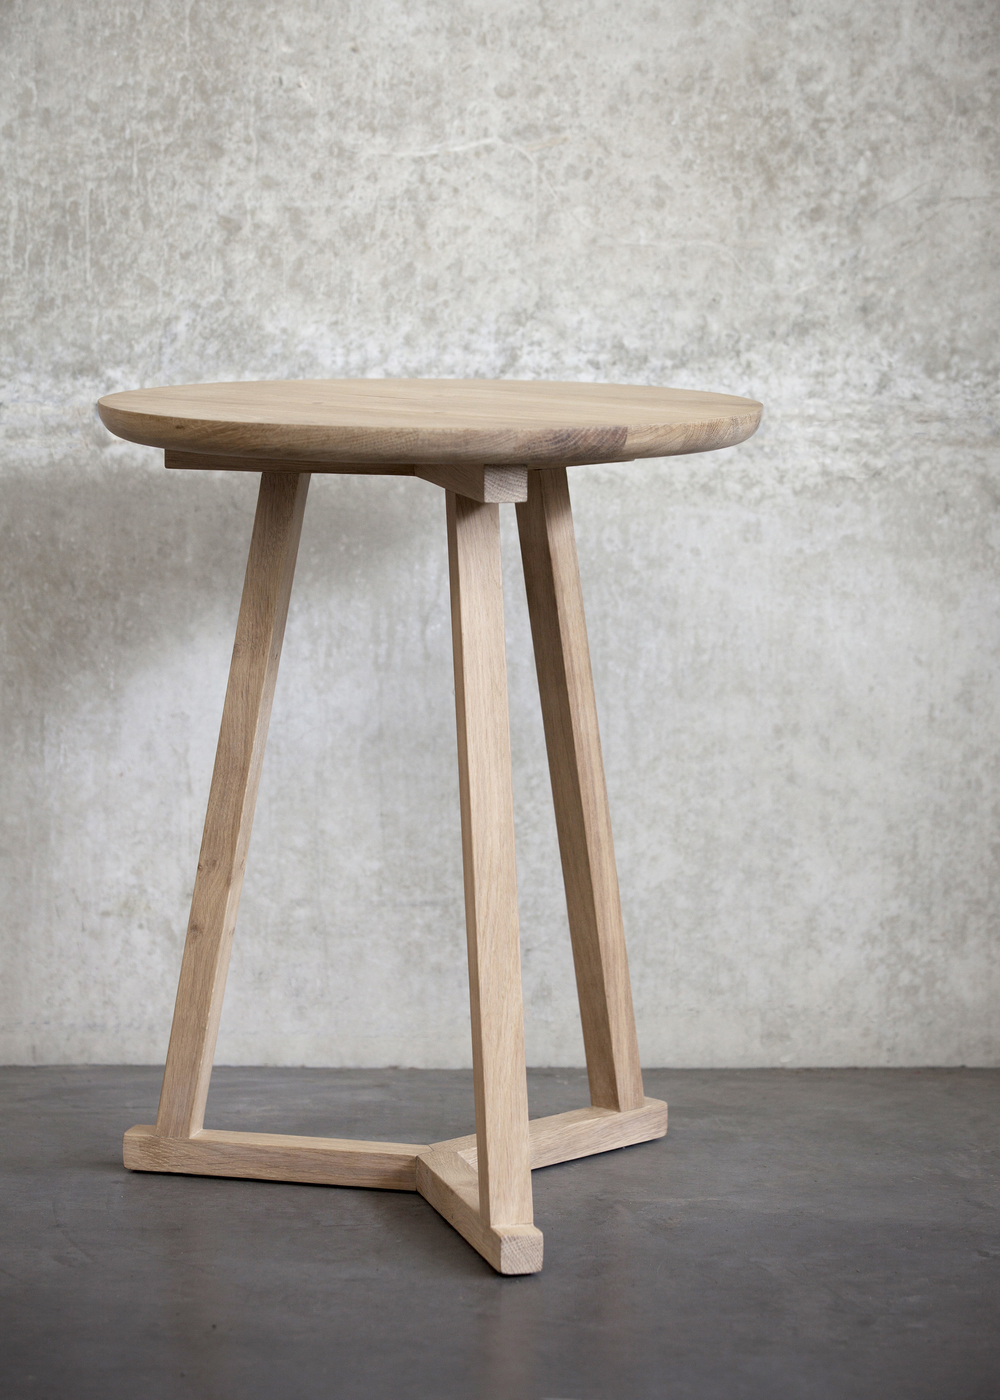 50508 Oak Tripod side table concrete.jpg